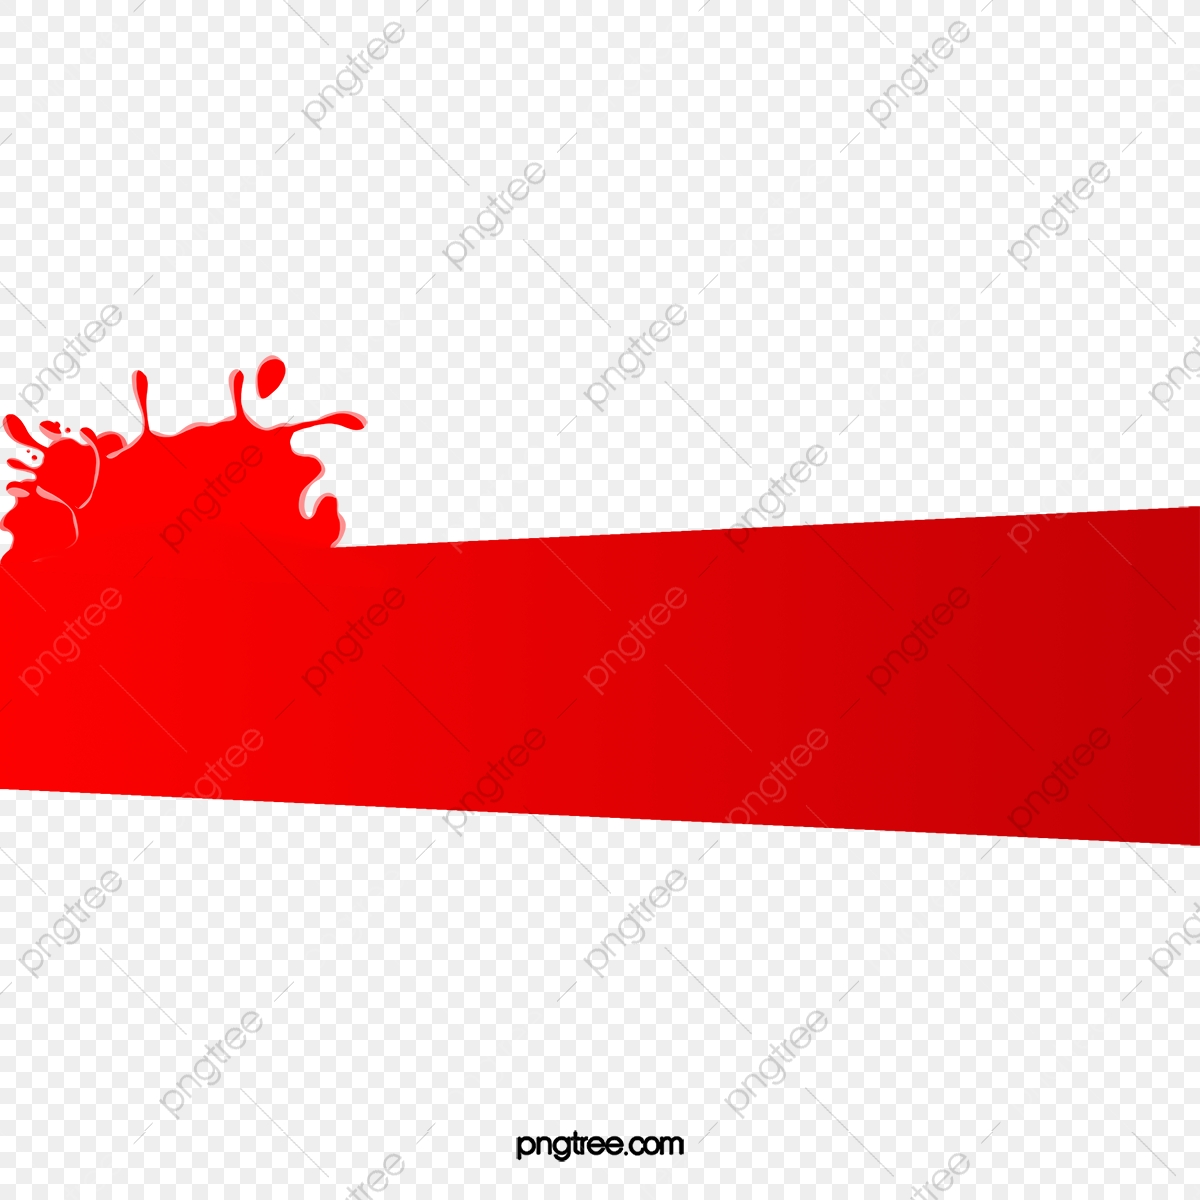 Water Splashing Water Wave Red Tape, Water Clipart, Wave.